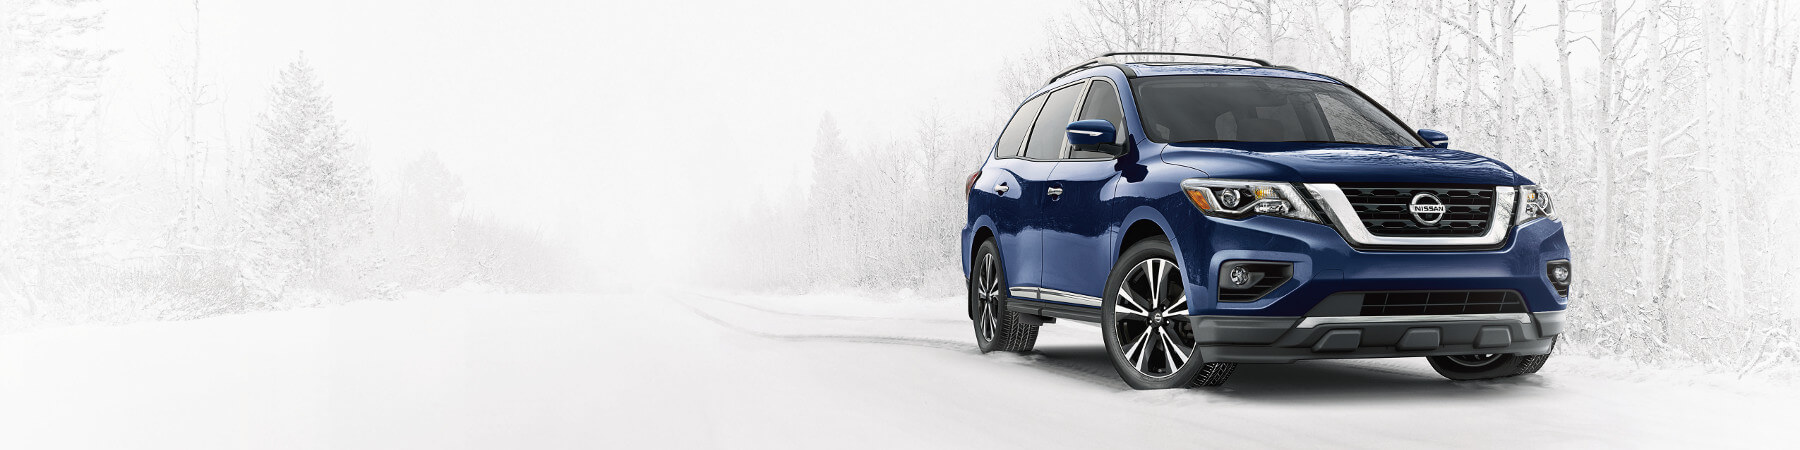 A blue 2018 Nissan Pathfinder driving in the snow